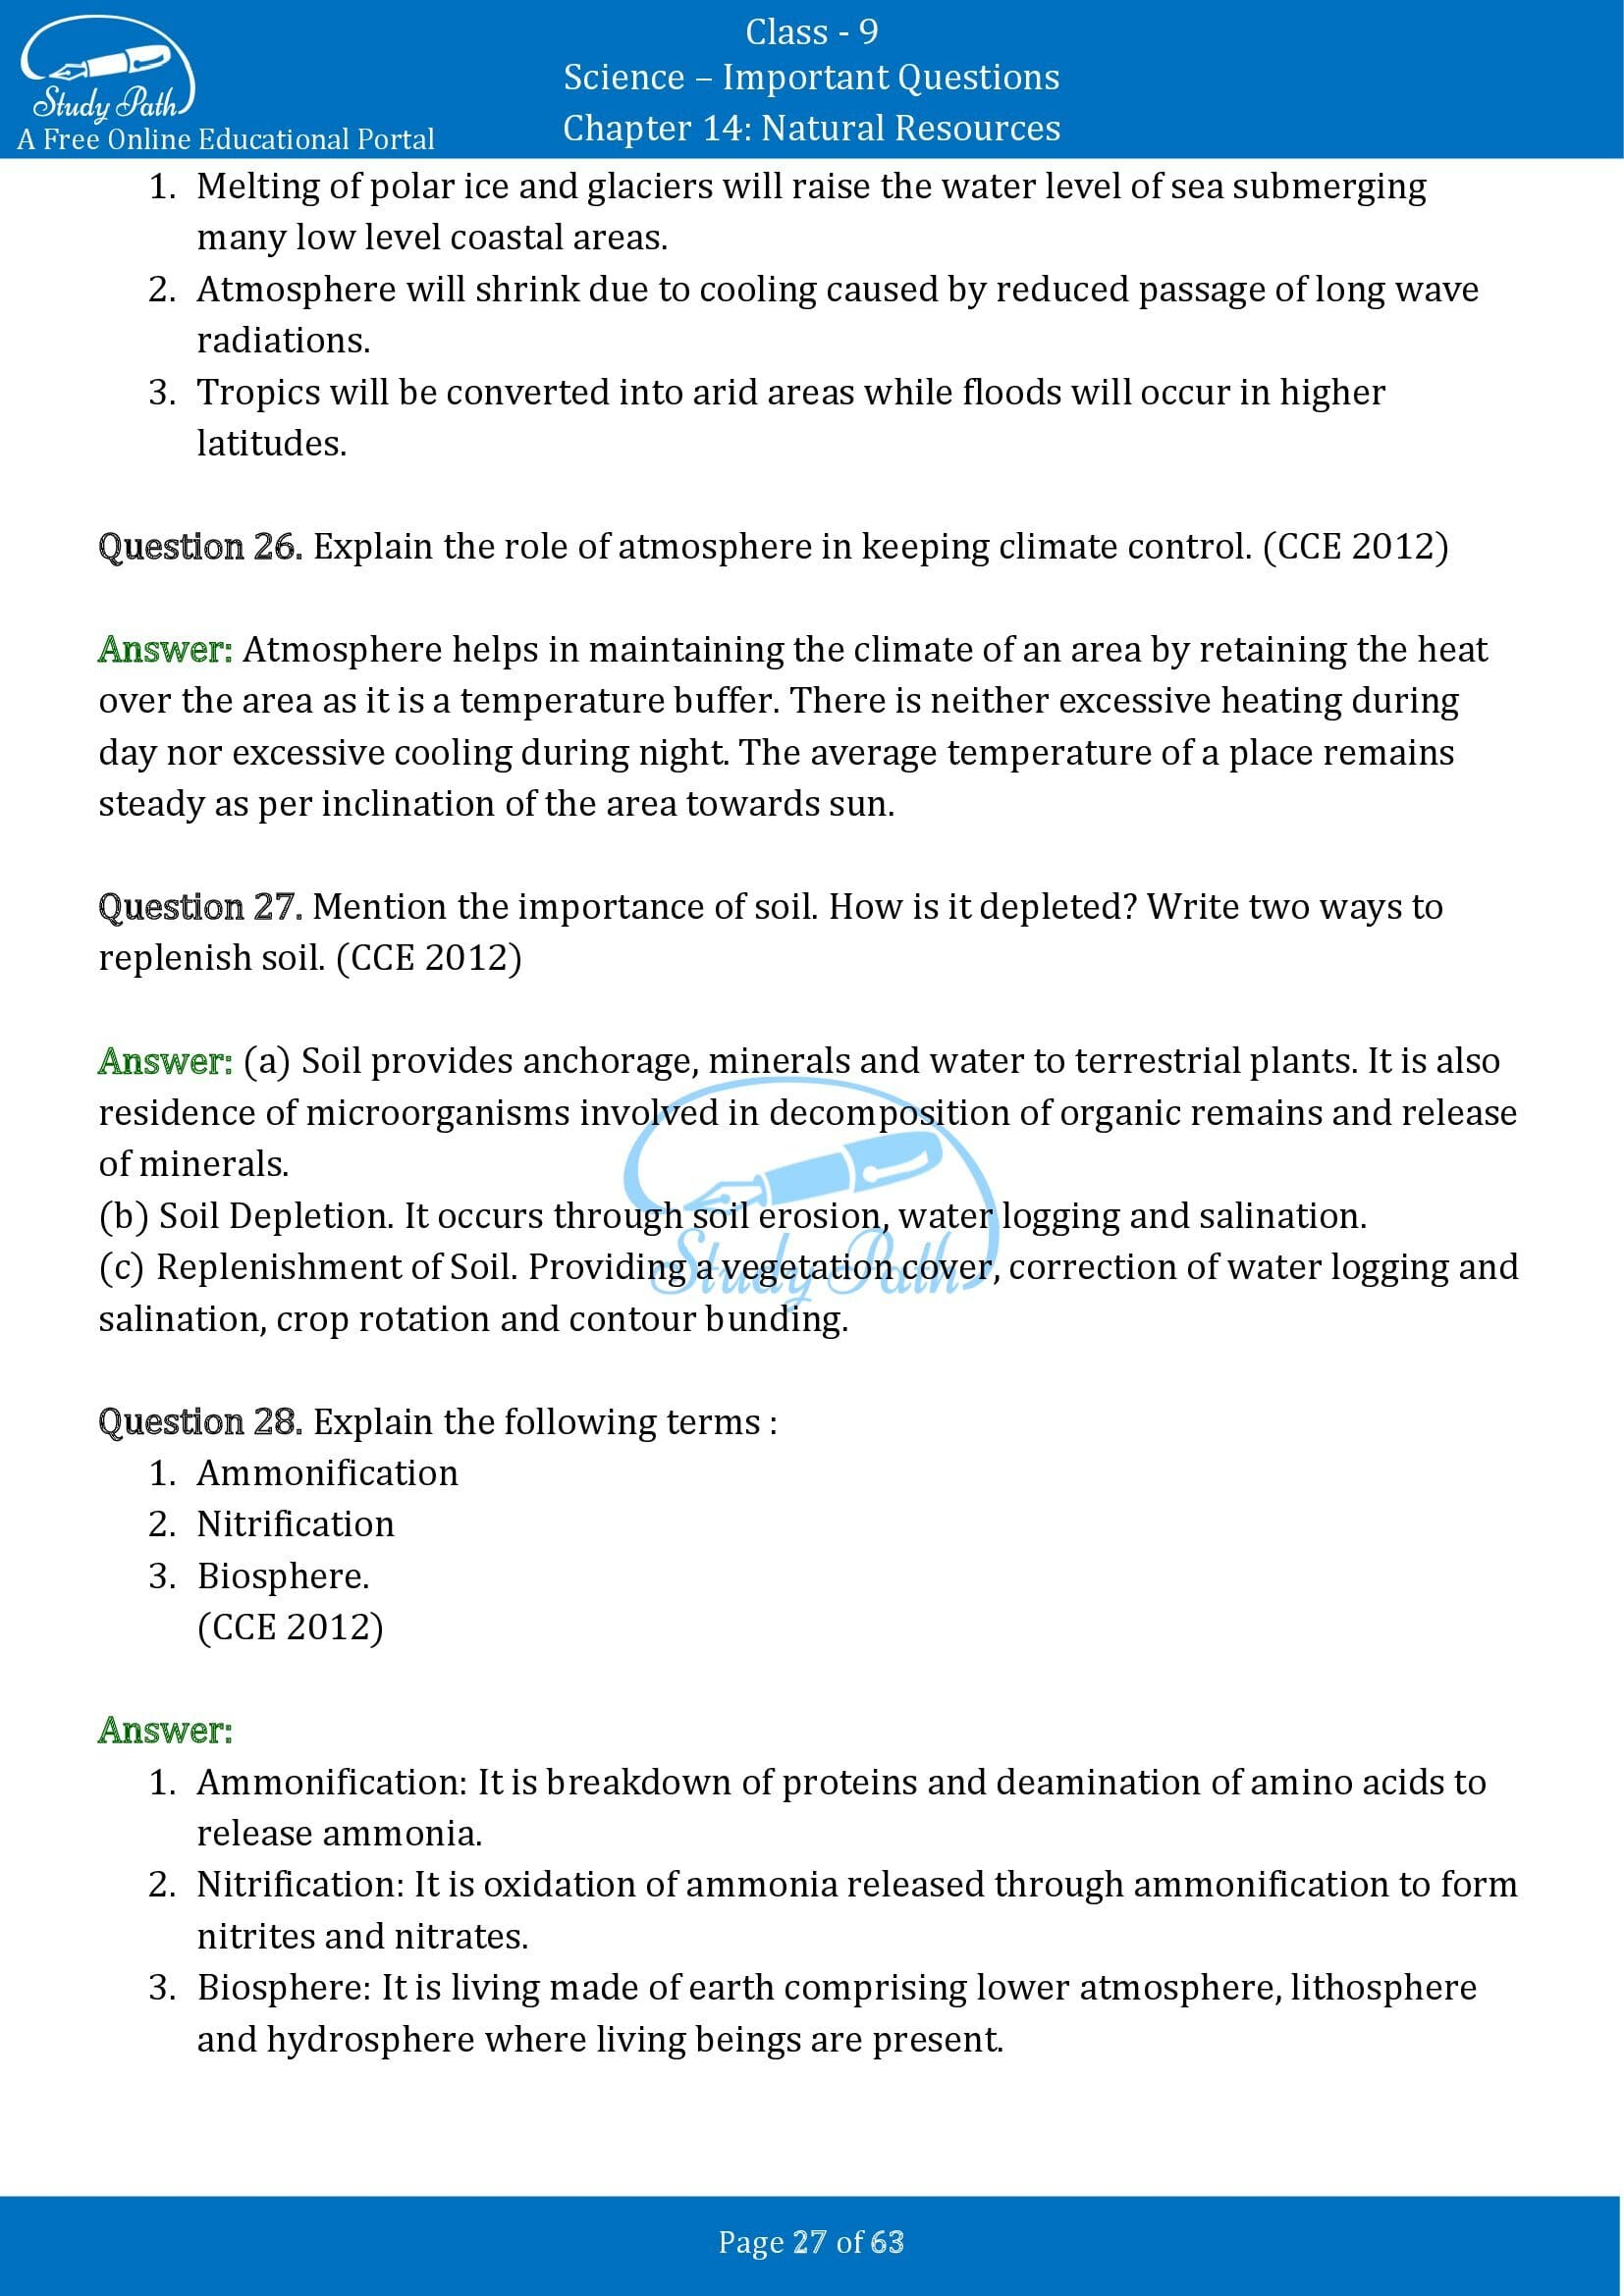 Important Questions for Class 9 Science Chapter 14 Natural Resources 00027